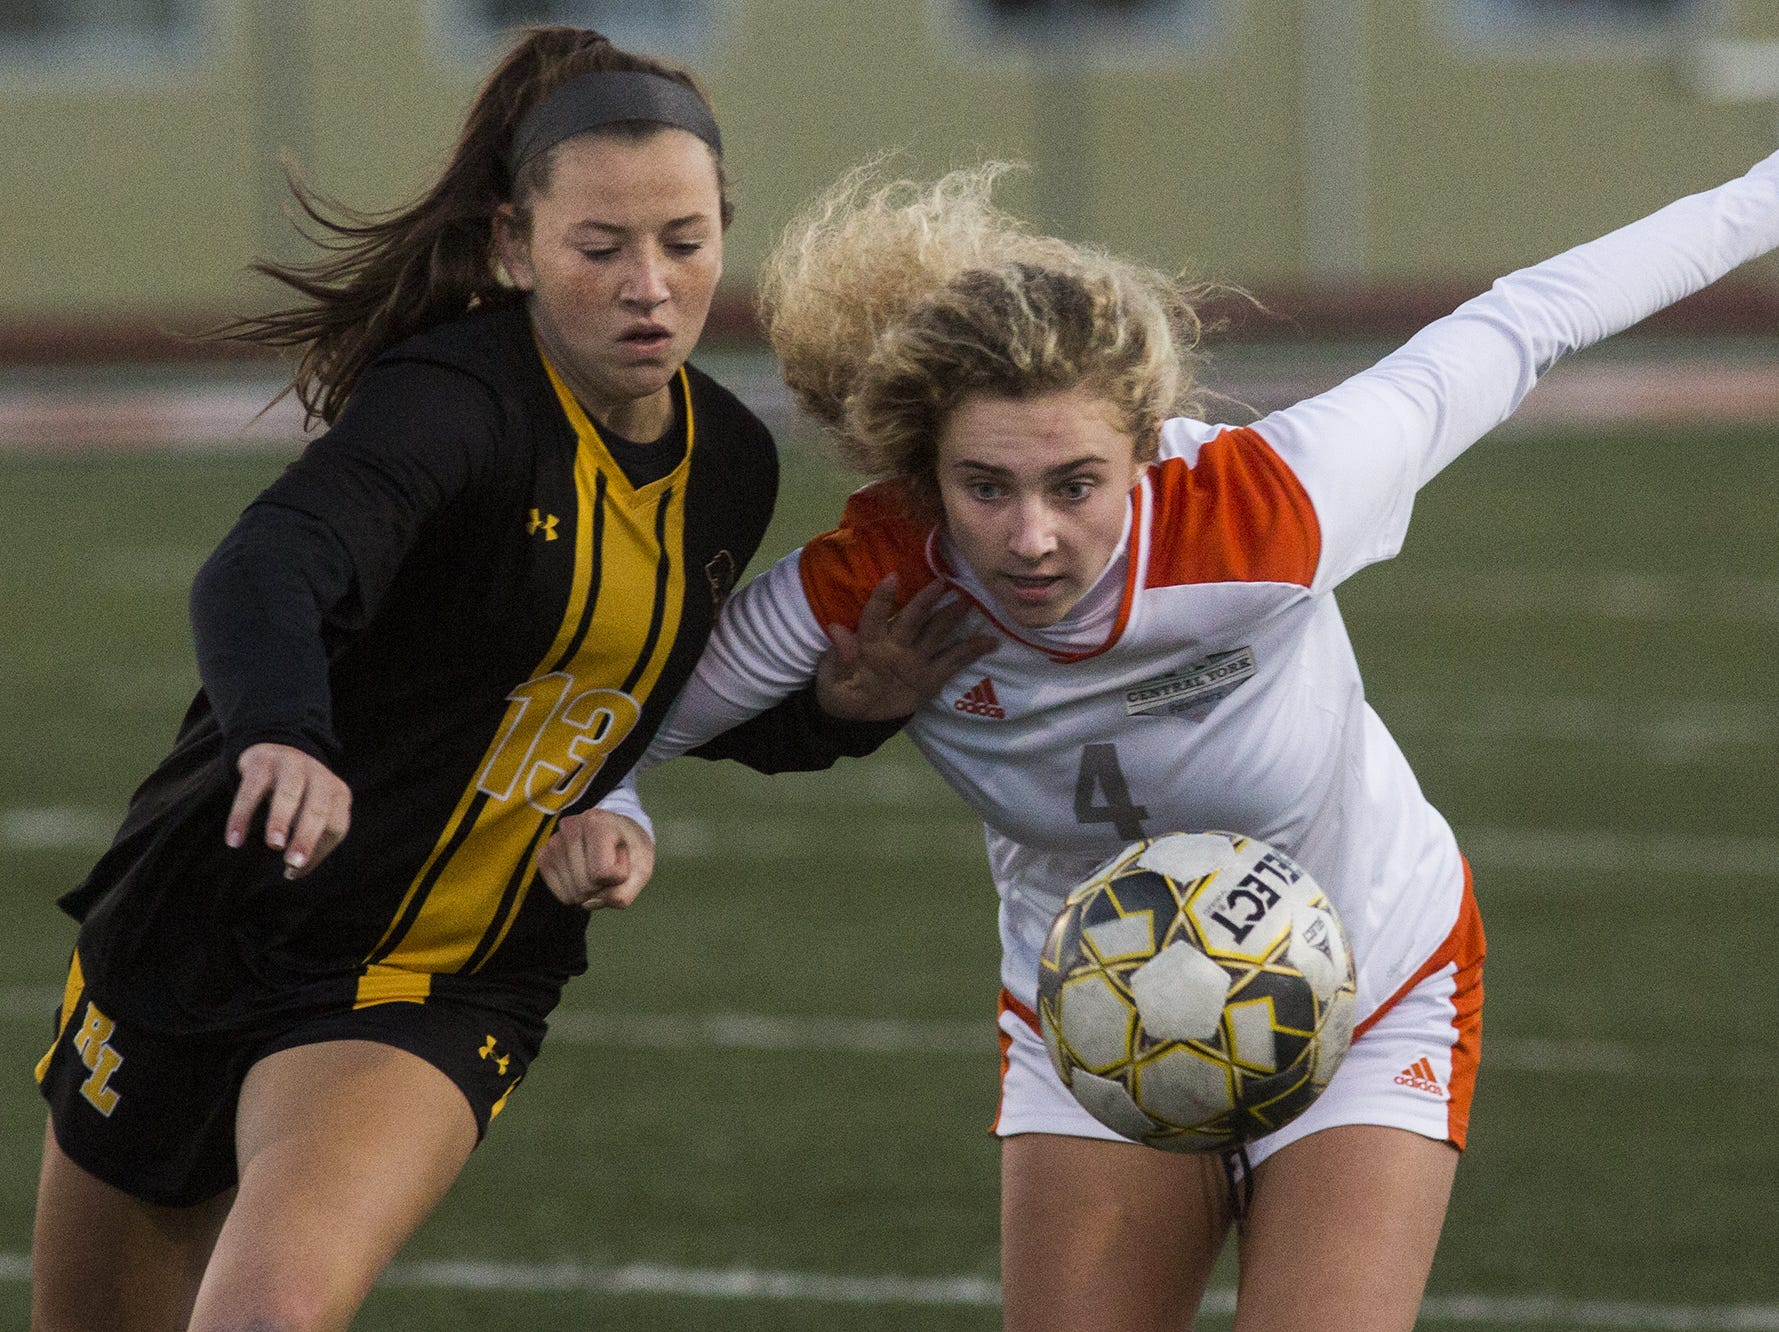 Red Lion's Julia Rowe, left, and Central York's Anya Schnetzka compete for the ball. Central York defeats Red Lion 1-0 in the YAIAA girls' soccer championship game at Northeastern High School in Manchester, Saturday, October 20, 2018.